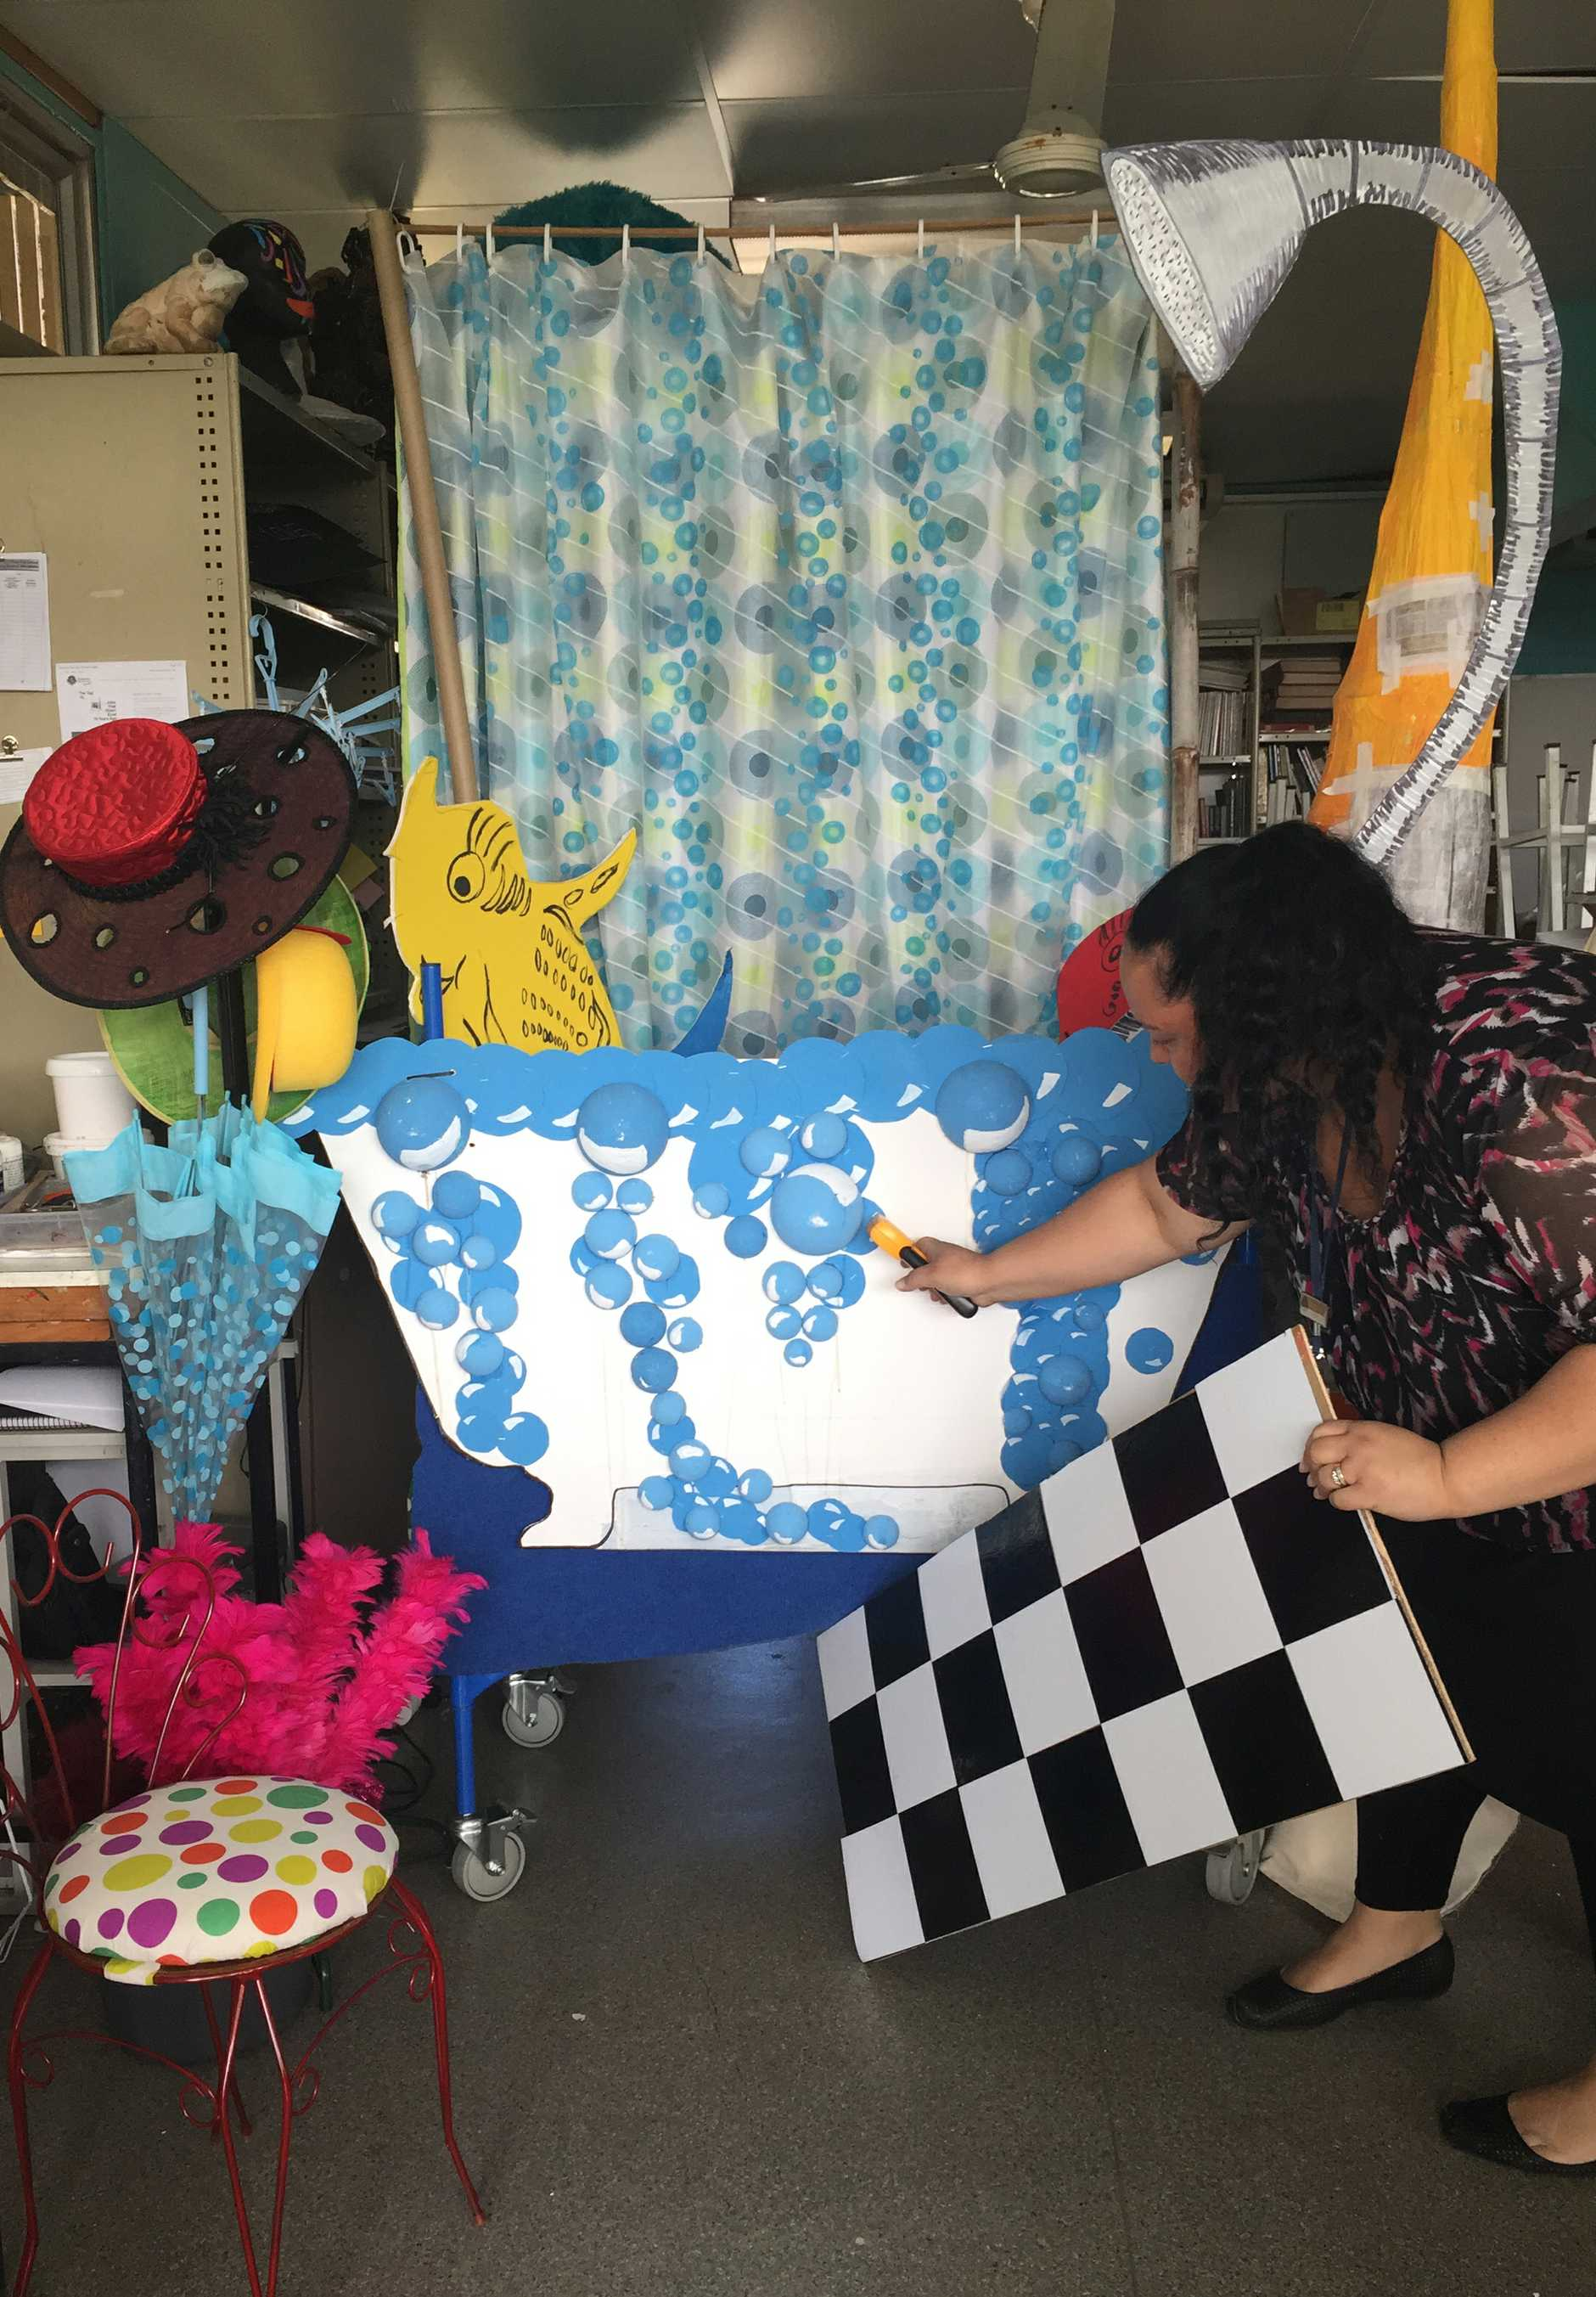 Cristie Lolo working on the set design for Seussical the Musical